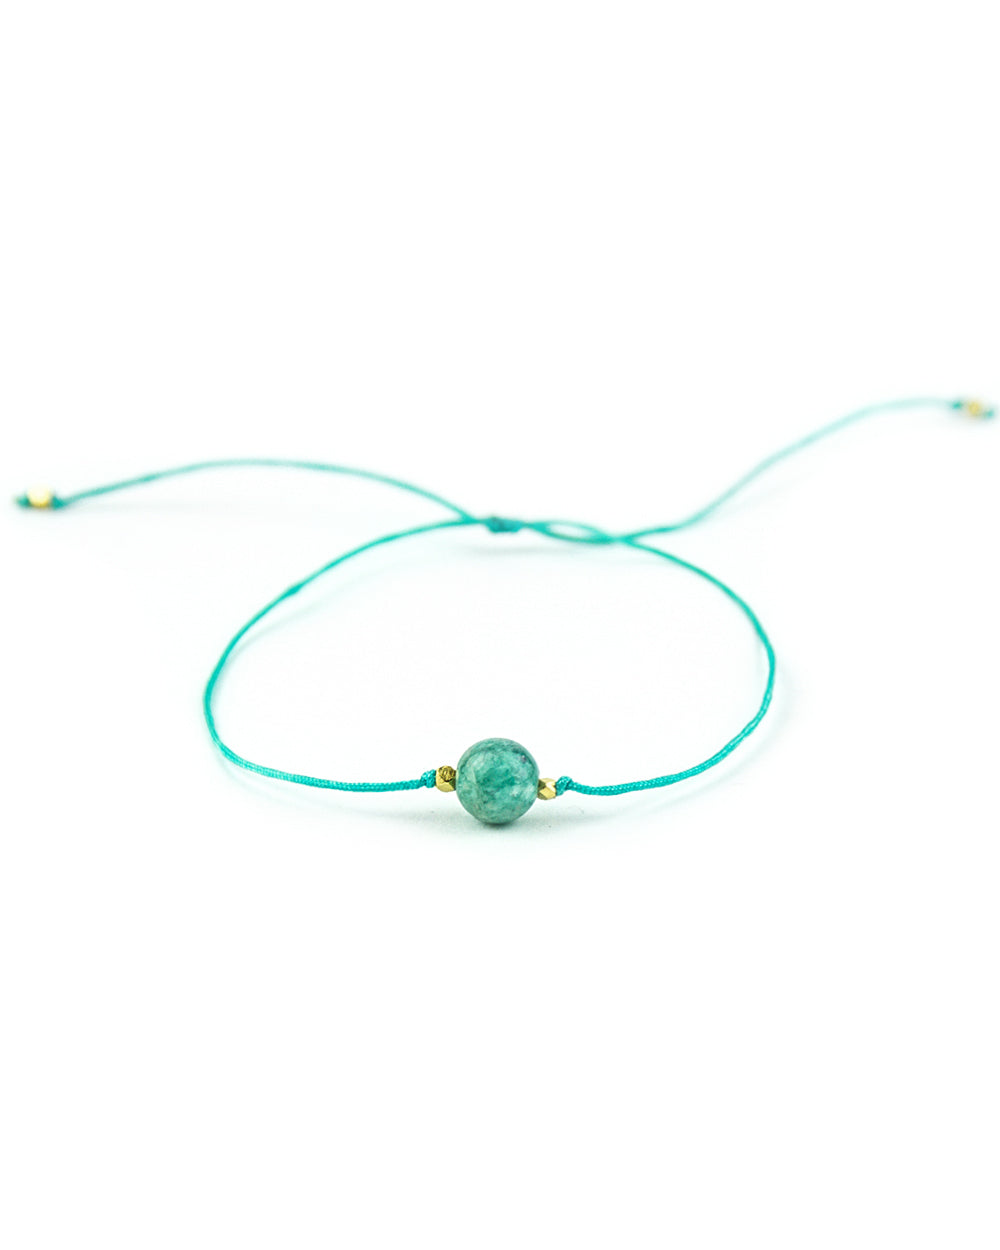 .... Türkises Everyday Companion Armband mit Amazonit .. Turquoise Everyday Companion Bracelet with Amazonite ....